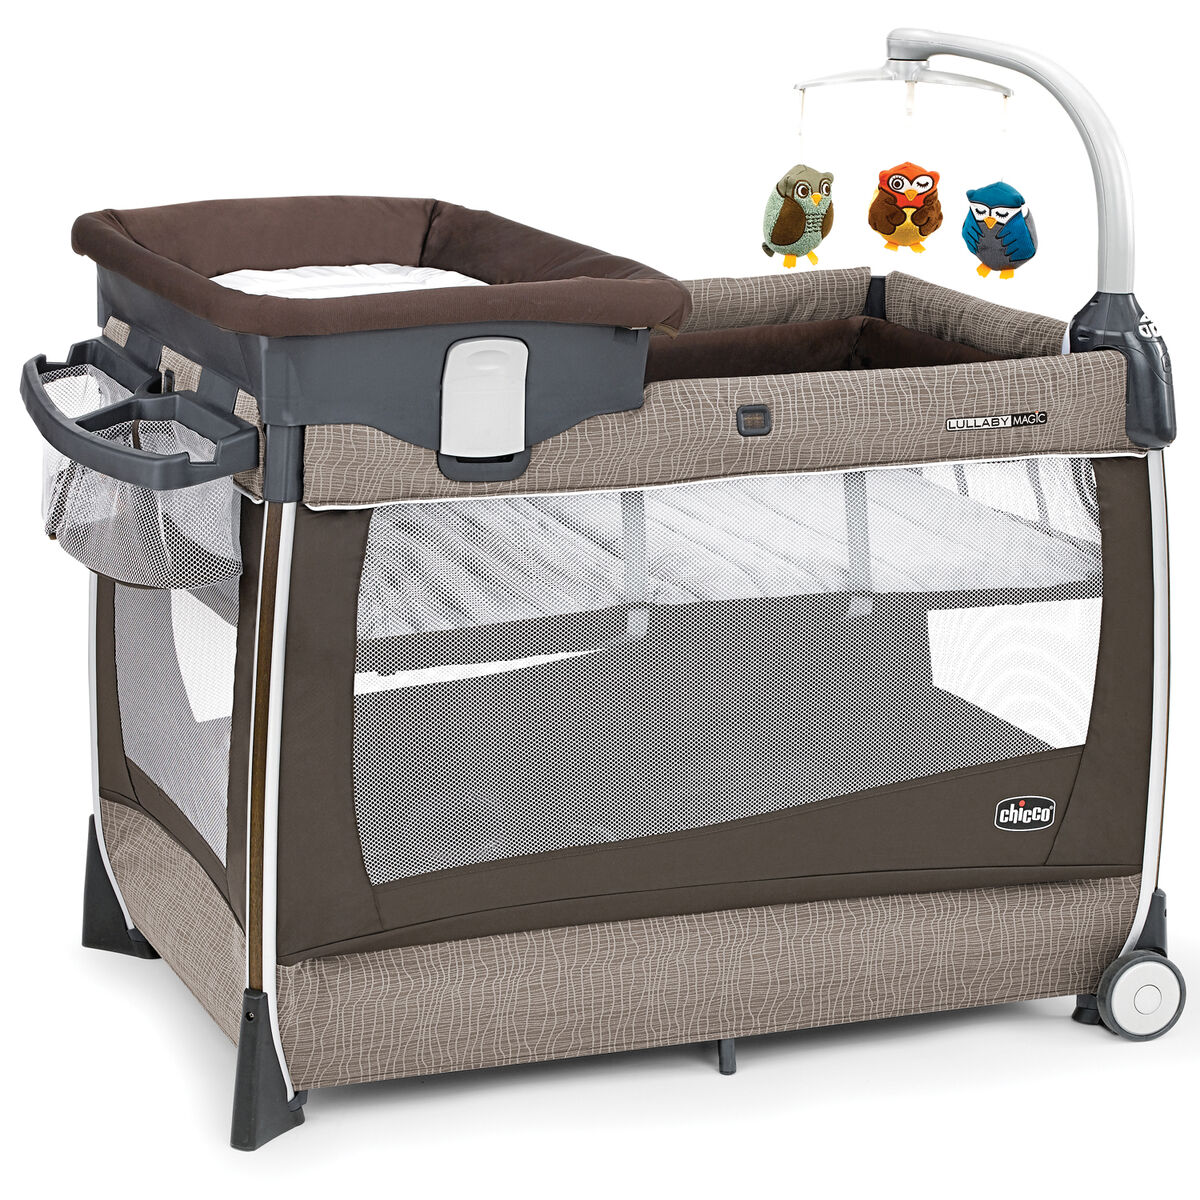 Baby crib playard - Lullaby Magic Playard Rattania Discontinued Lullaby Magic Playard Rattania Discontinued